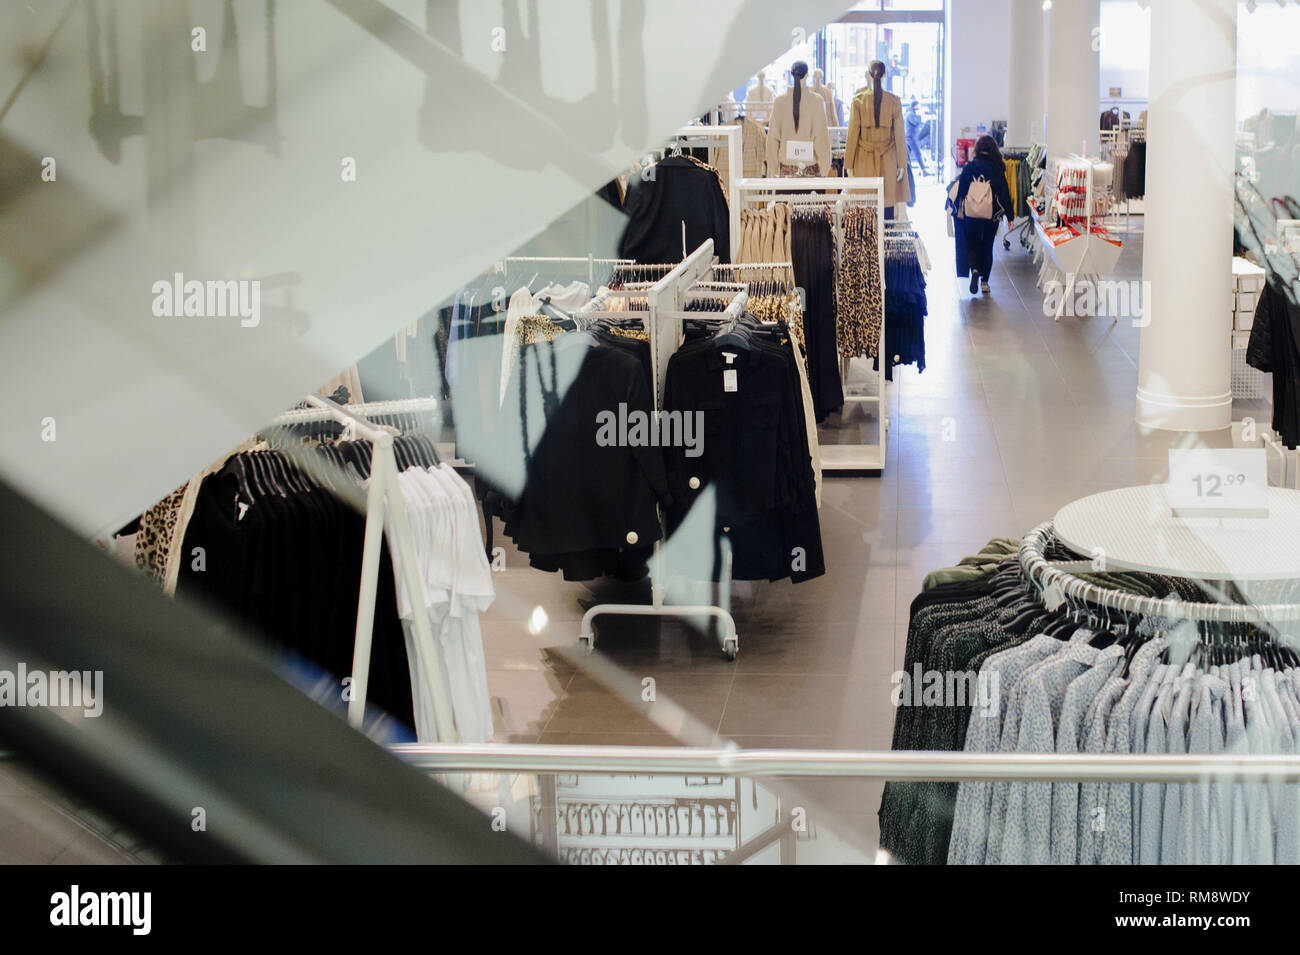 A woman seen shopping inside the Regent Street branch of clothing retailer H&M in central London. February 15 sees the release of the first monthly retail sales figures of the year (for January) from the UK's Office for National Statistics. December figures revealed a 0.9 percent fall in sales from the month before, which saw a 1.4 percent rise widely attributed to the impact of 'Black Friday' deals encouraging earlier Christmas shopping. More generally, with a potential no-deal departure from the EU growing nearer and continuing to undermine consumer confidence in the UK, economy-watchers hav - Stock Image